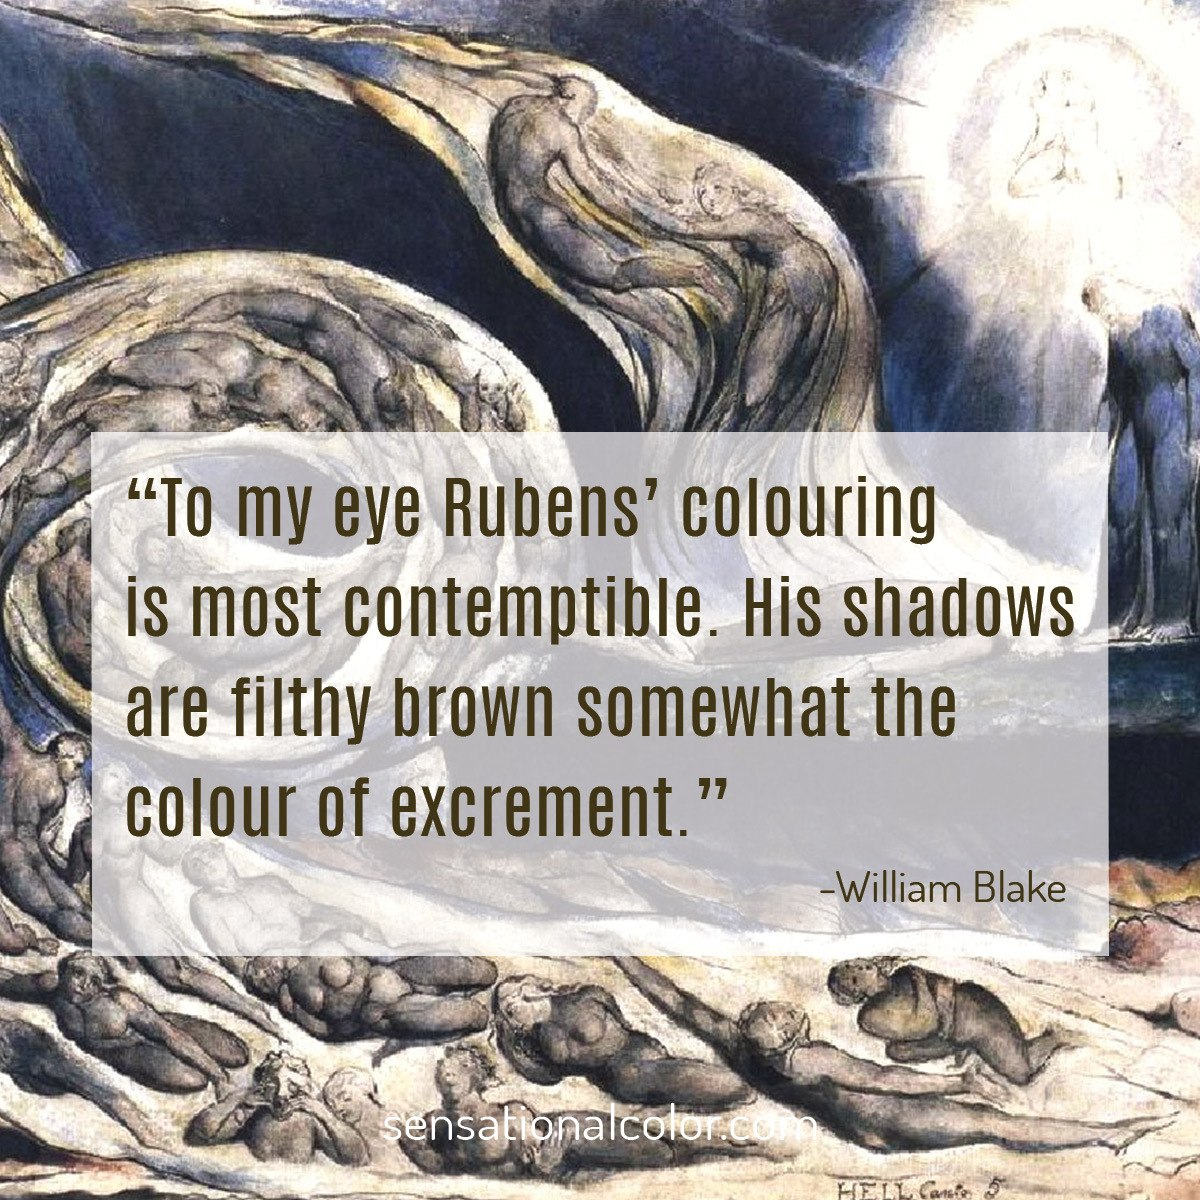 """To my eye Rubens' colouring is most contemptible. His shadows are a filthy brown somewhat the colour of excrement."" - William Blake"